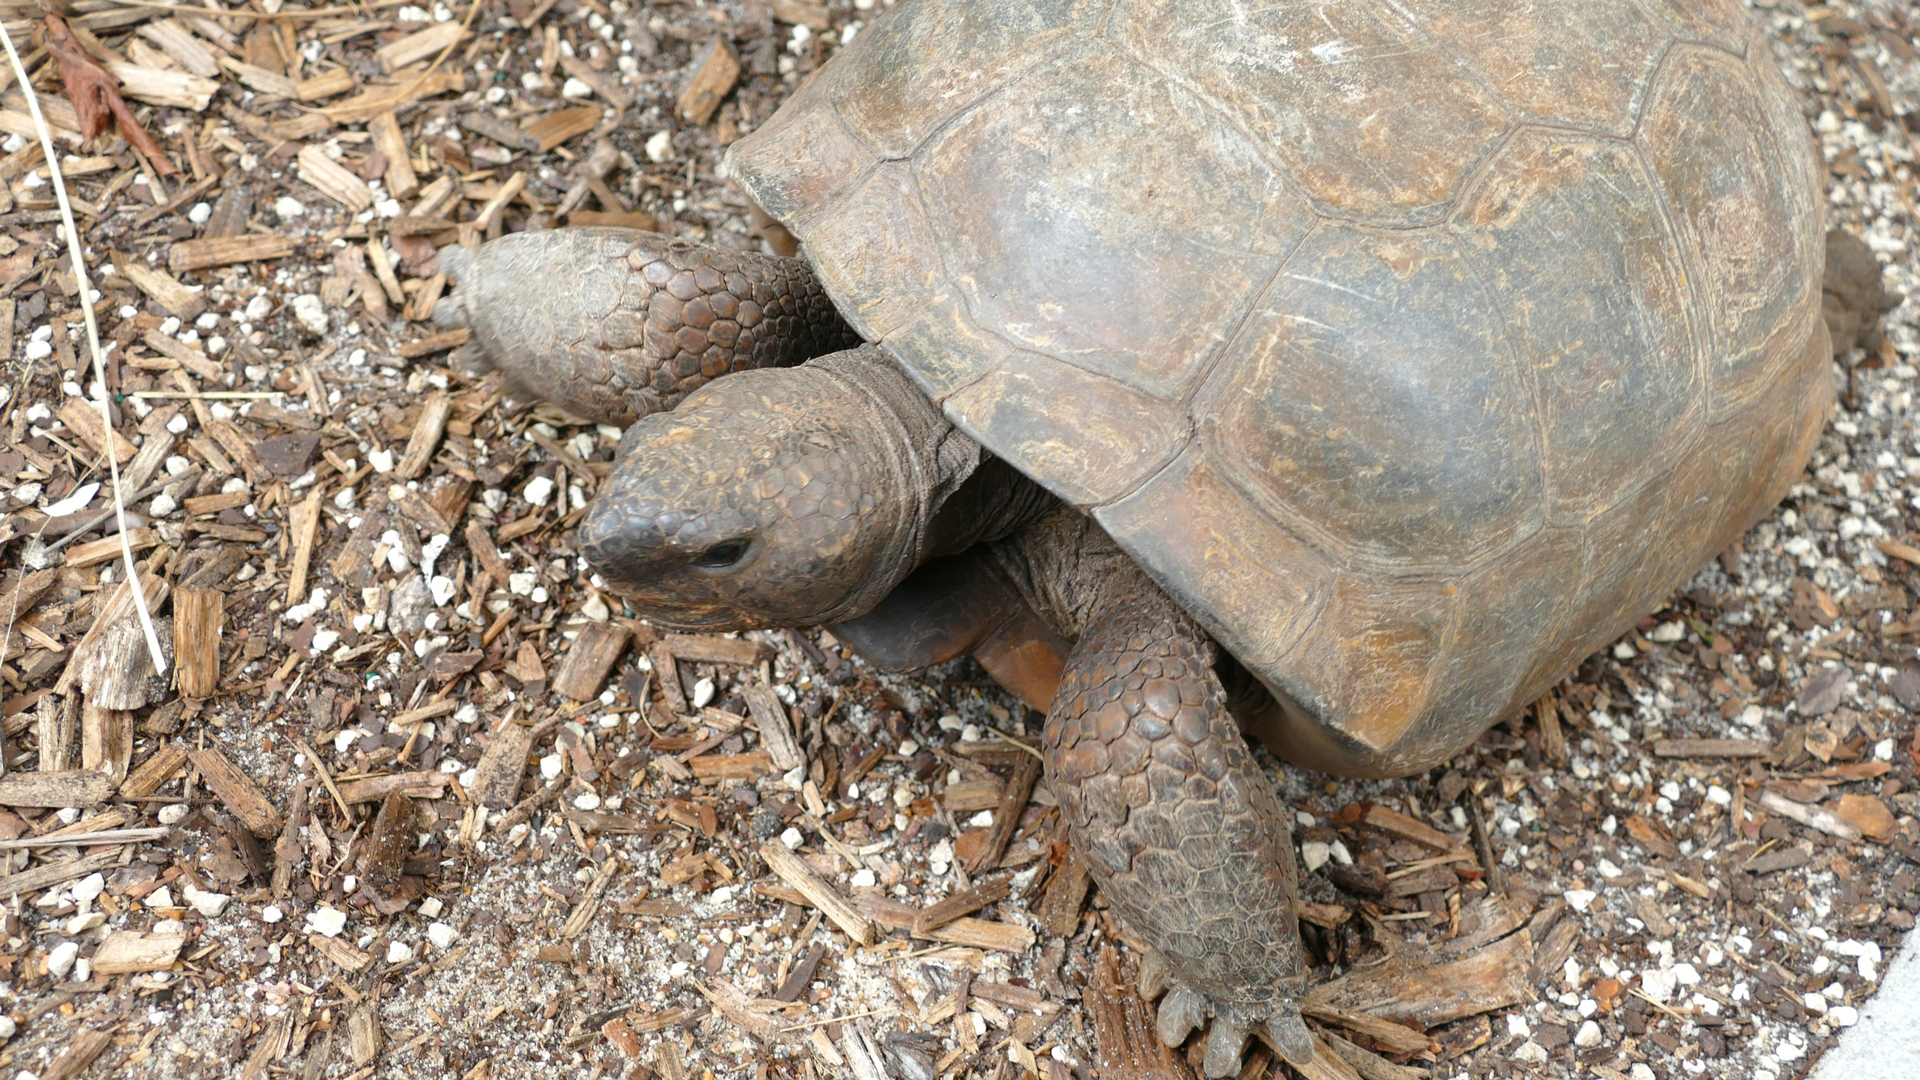 Frost Science's resident gopher tortoise